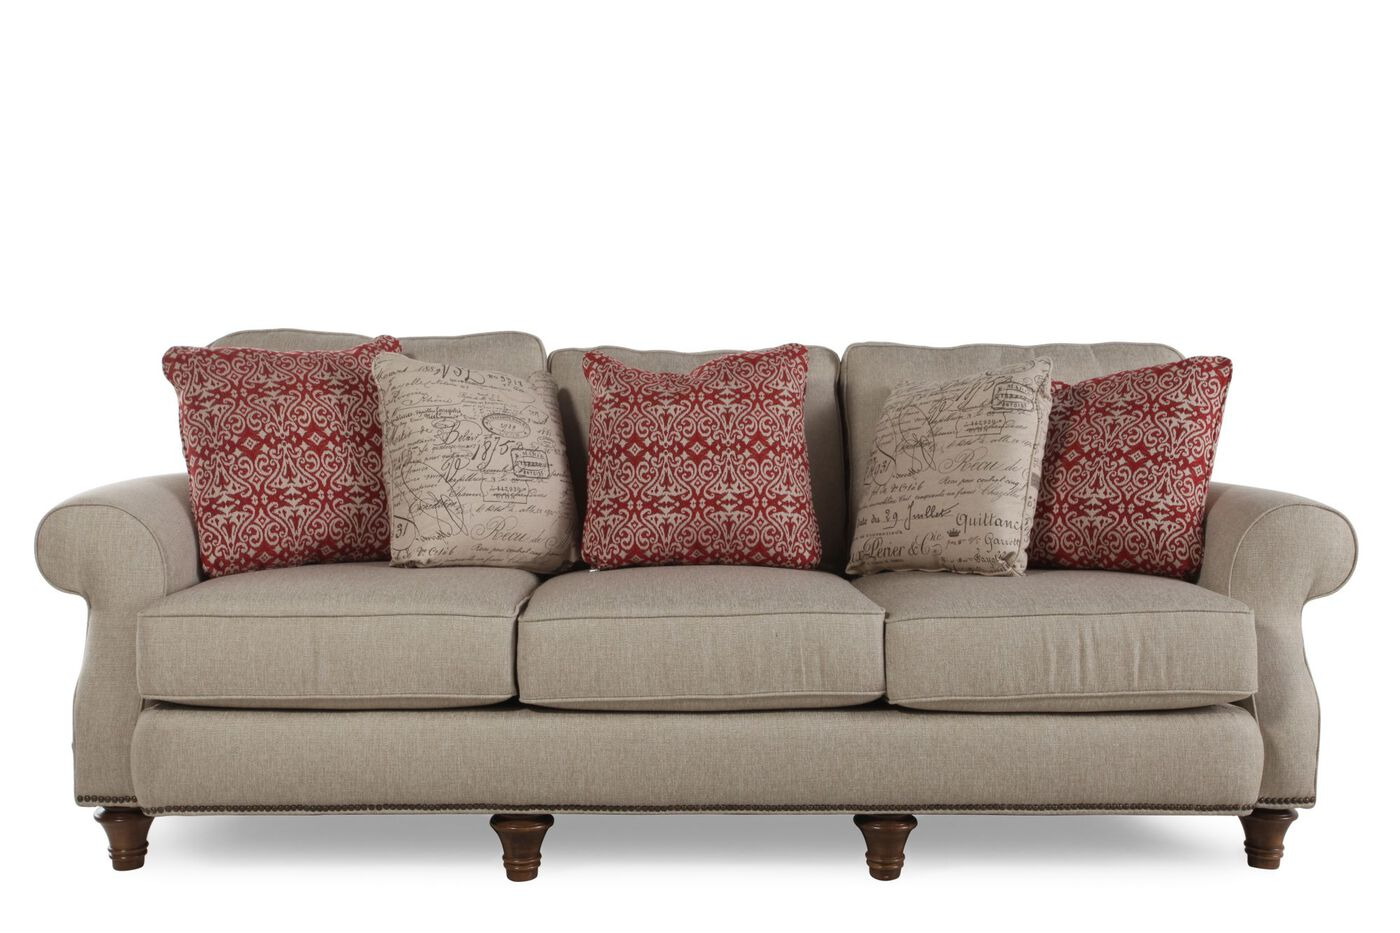 Broyhill whitfield sofa mathis brothers furniture for Broyhill furniture